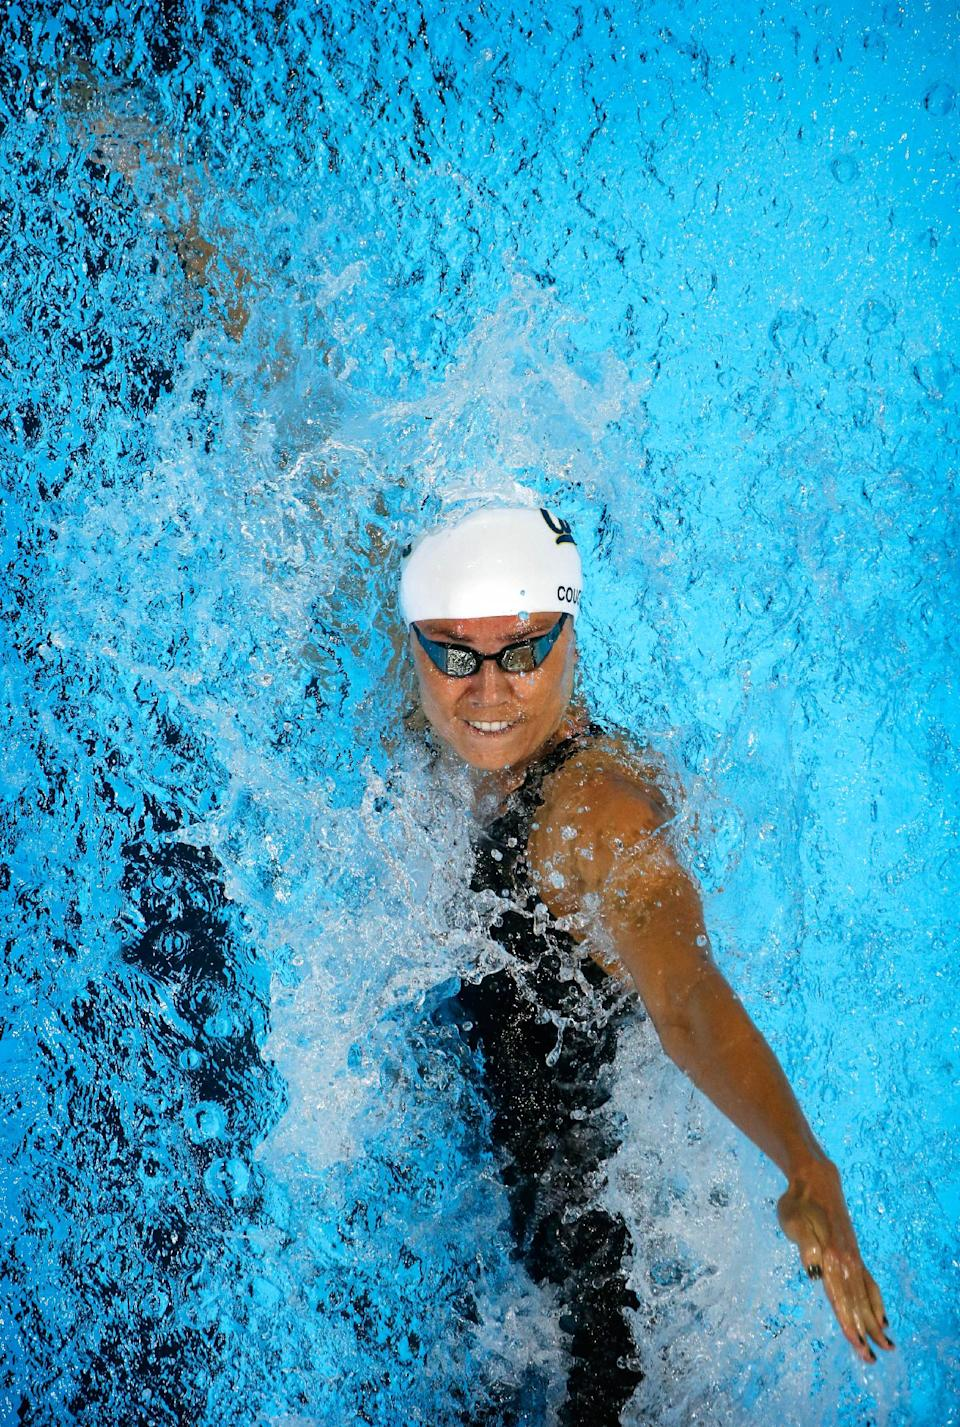 Natalie Coughlin swims in the women's 100-meter backstroke preliminaries at the U.S. Olympic swimming trials, Tuesday, June 26, 2012, in Omaha, Neb. (AP Photo/Mark Humphrey)